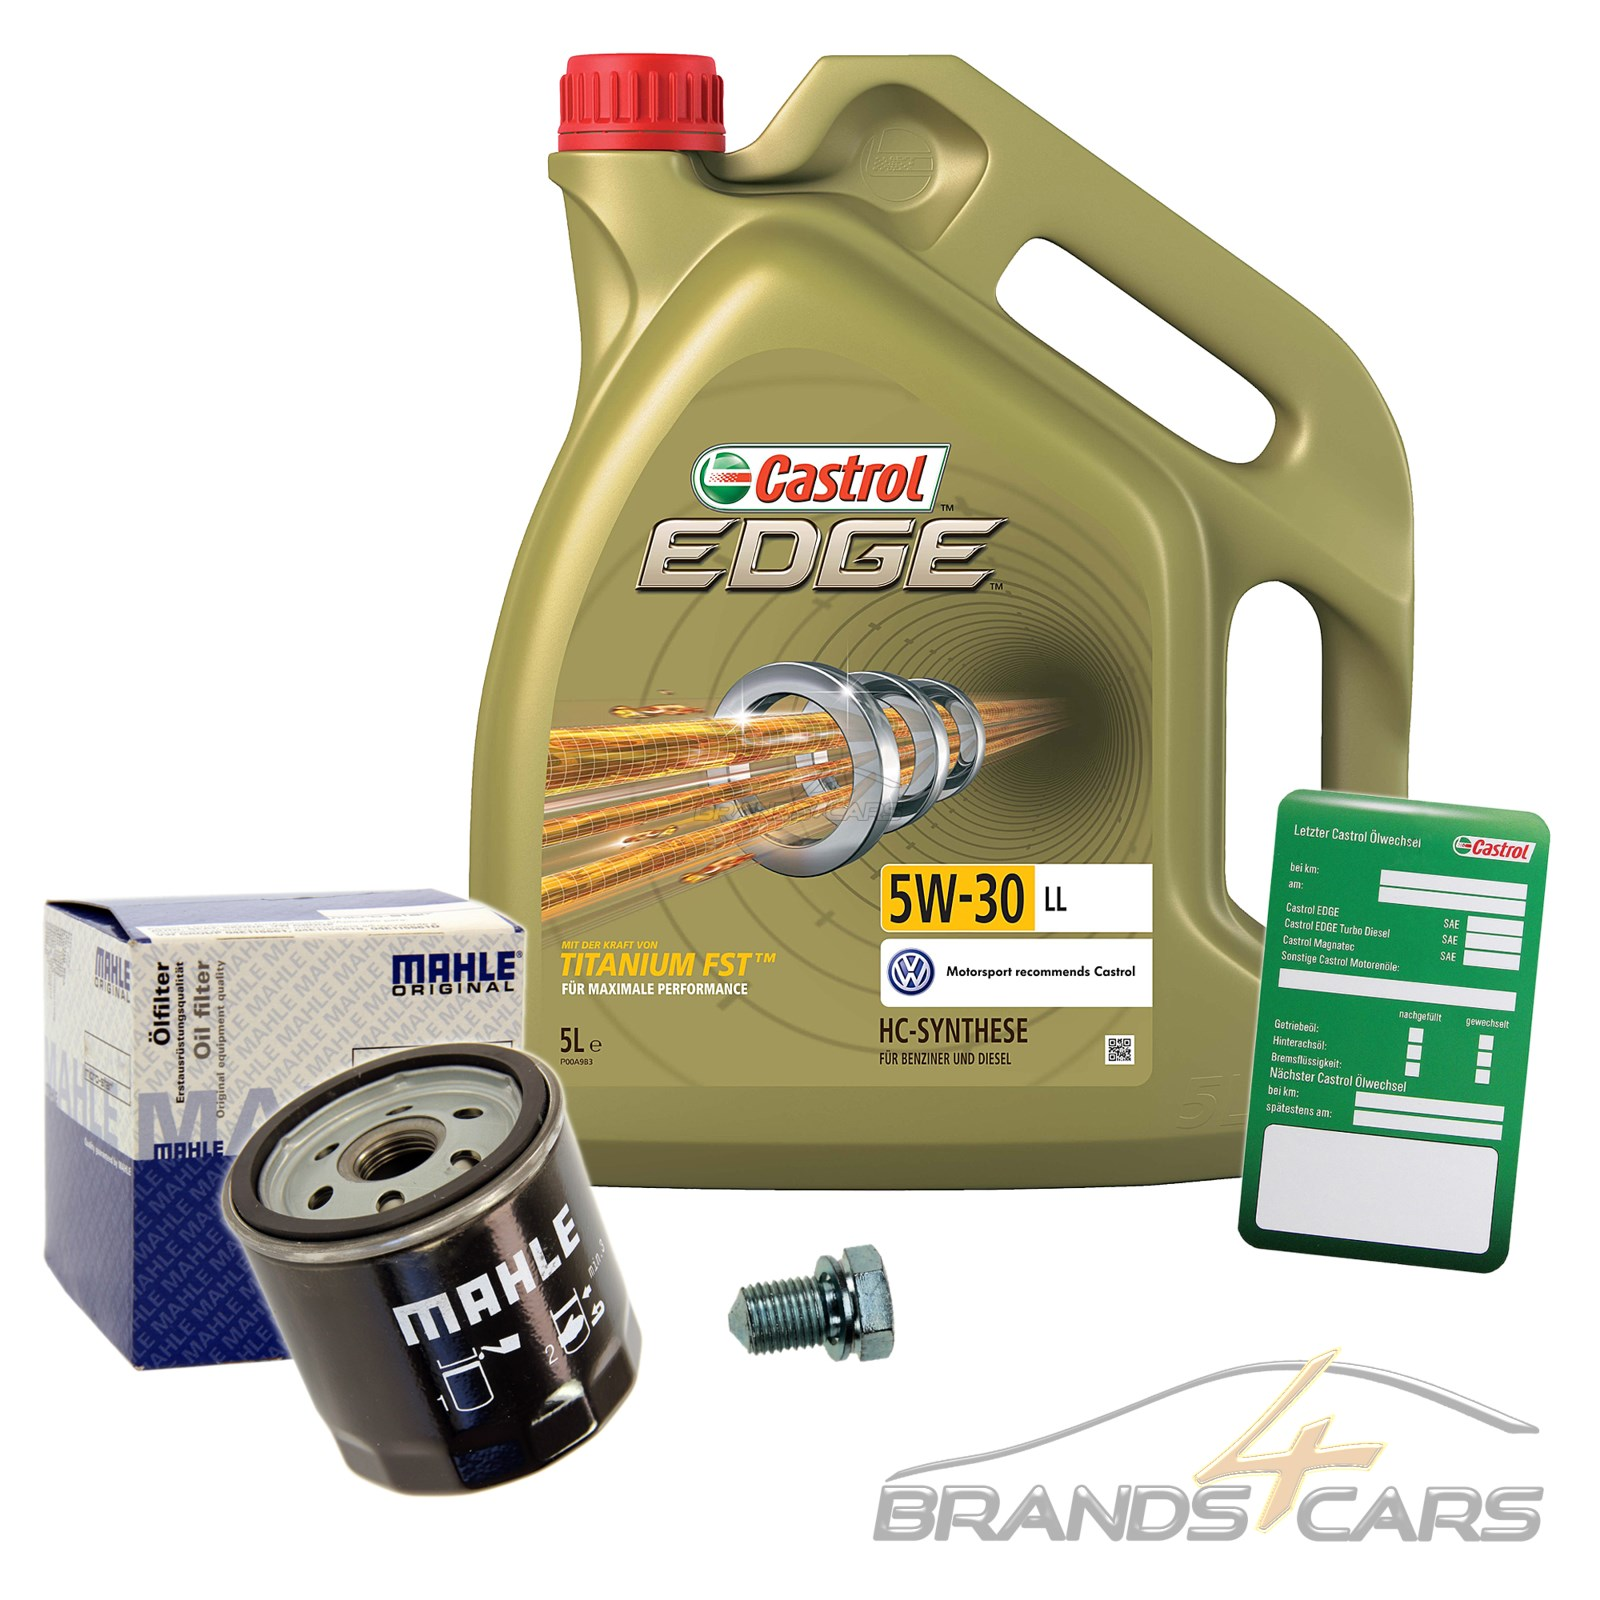 mahle lfilter 5l castrol edge fst 5w 30 ll vw golf 7 5g. Black Bedroom Furniture Sets. Home Design Ideas